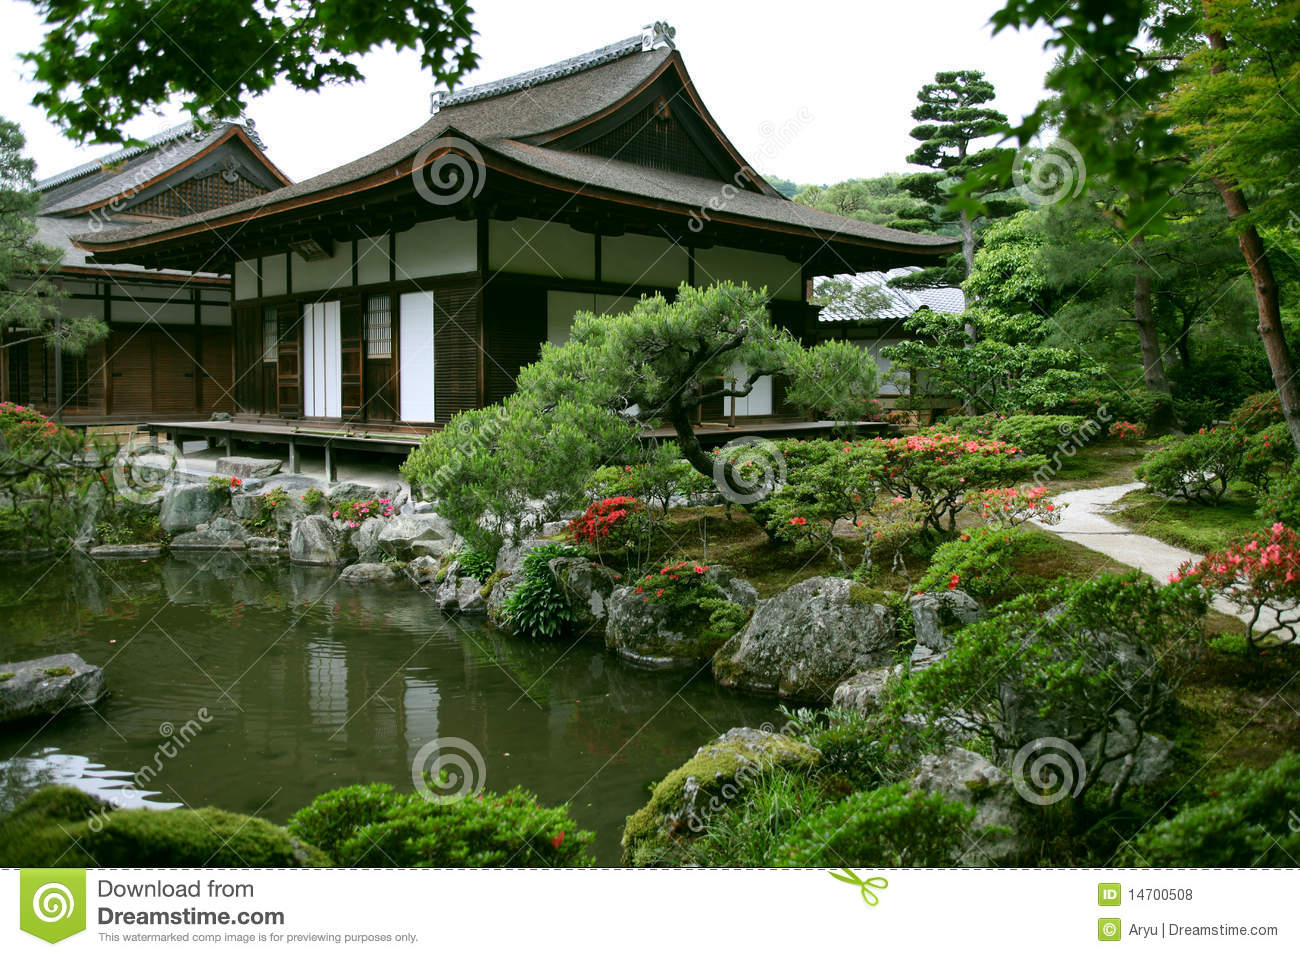 Japanese Landscape Architecture Japanese Landscape Garden Royalty Free Stock Photos Image 14700508